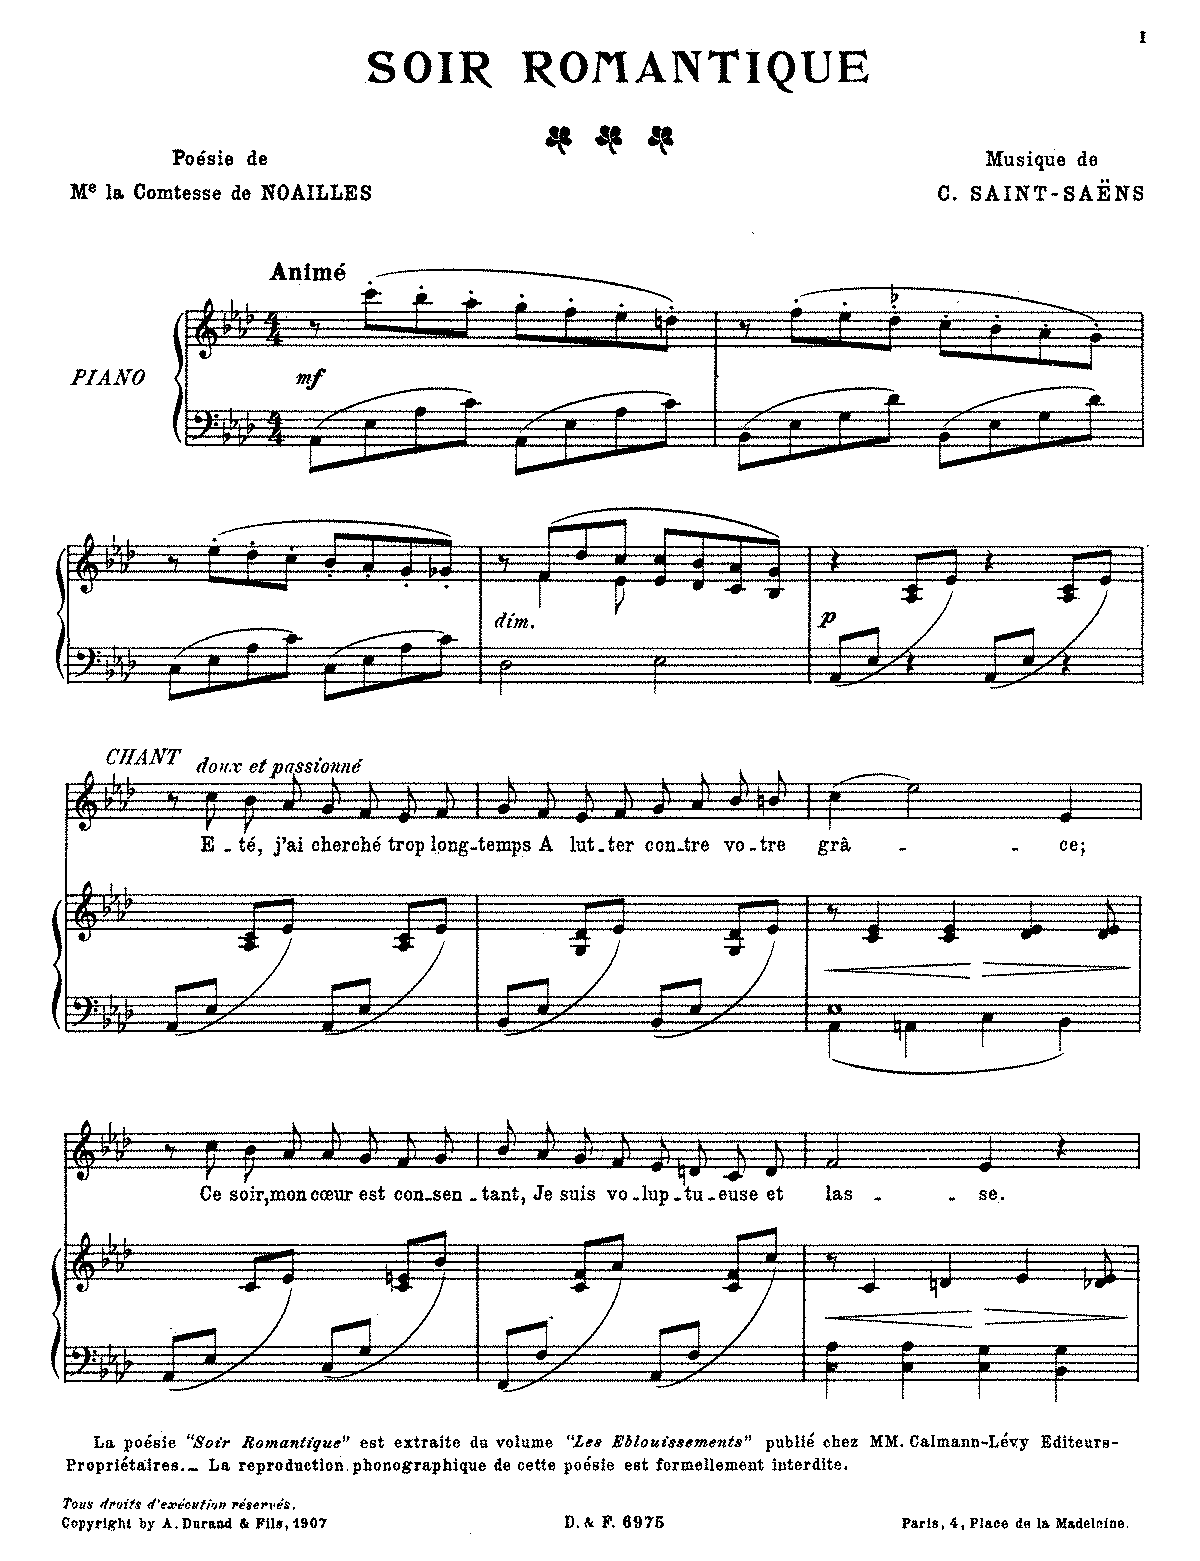 PMLP132268-Saint-Saëns - Soir romantique (voice and piano).pdf